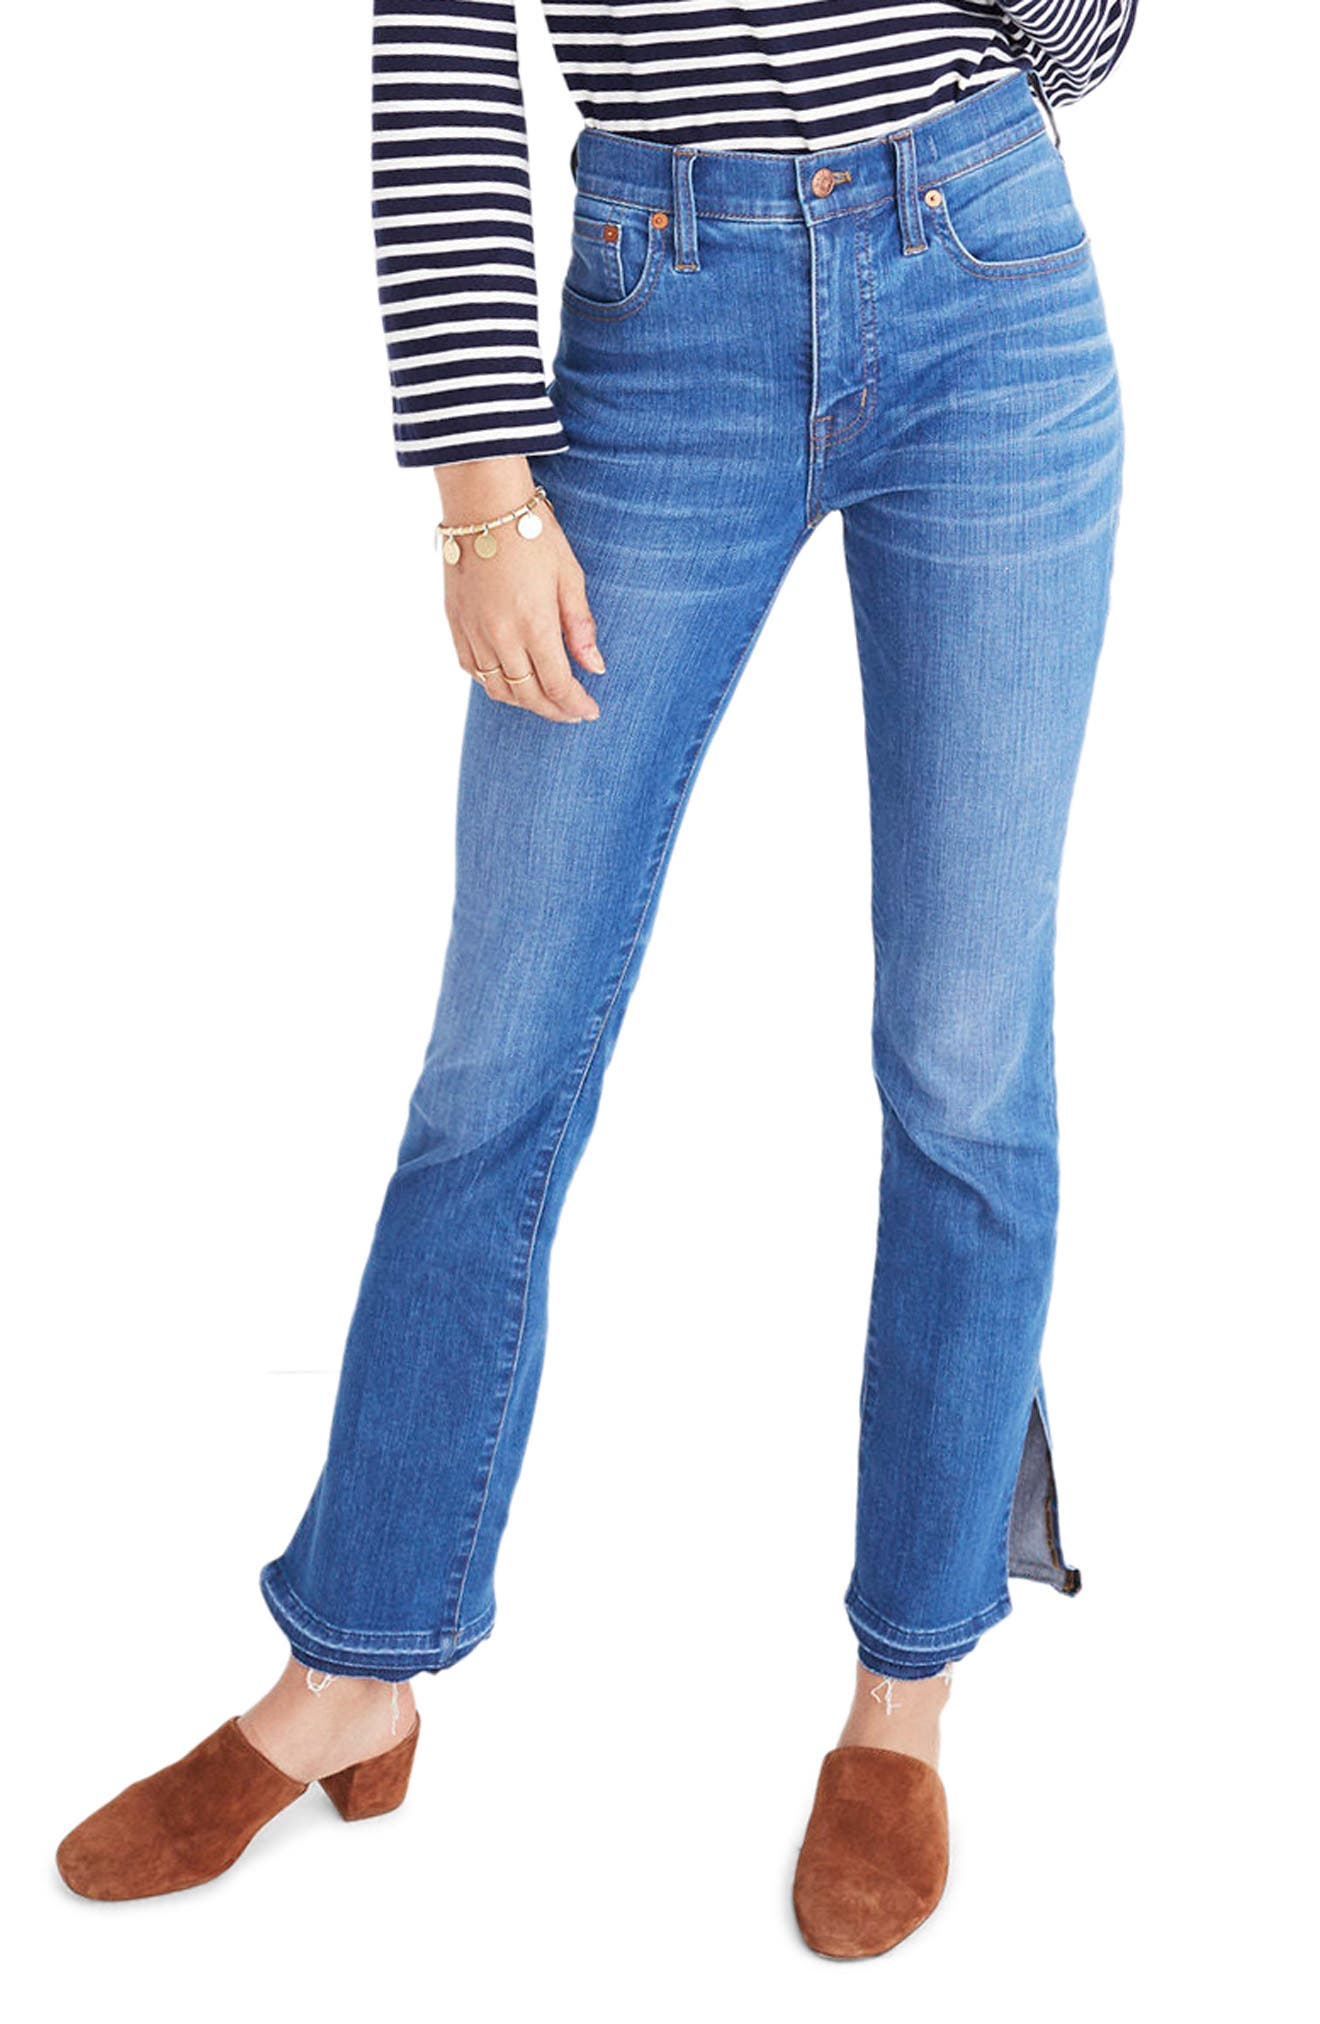 MADEWELL Cali Split Hem Demi Boot Jeans, Main, color, 421